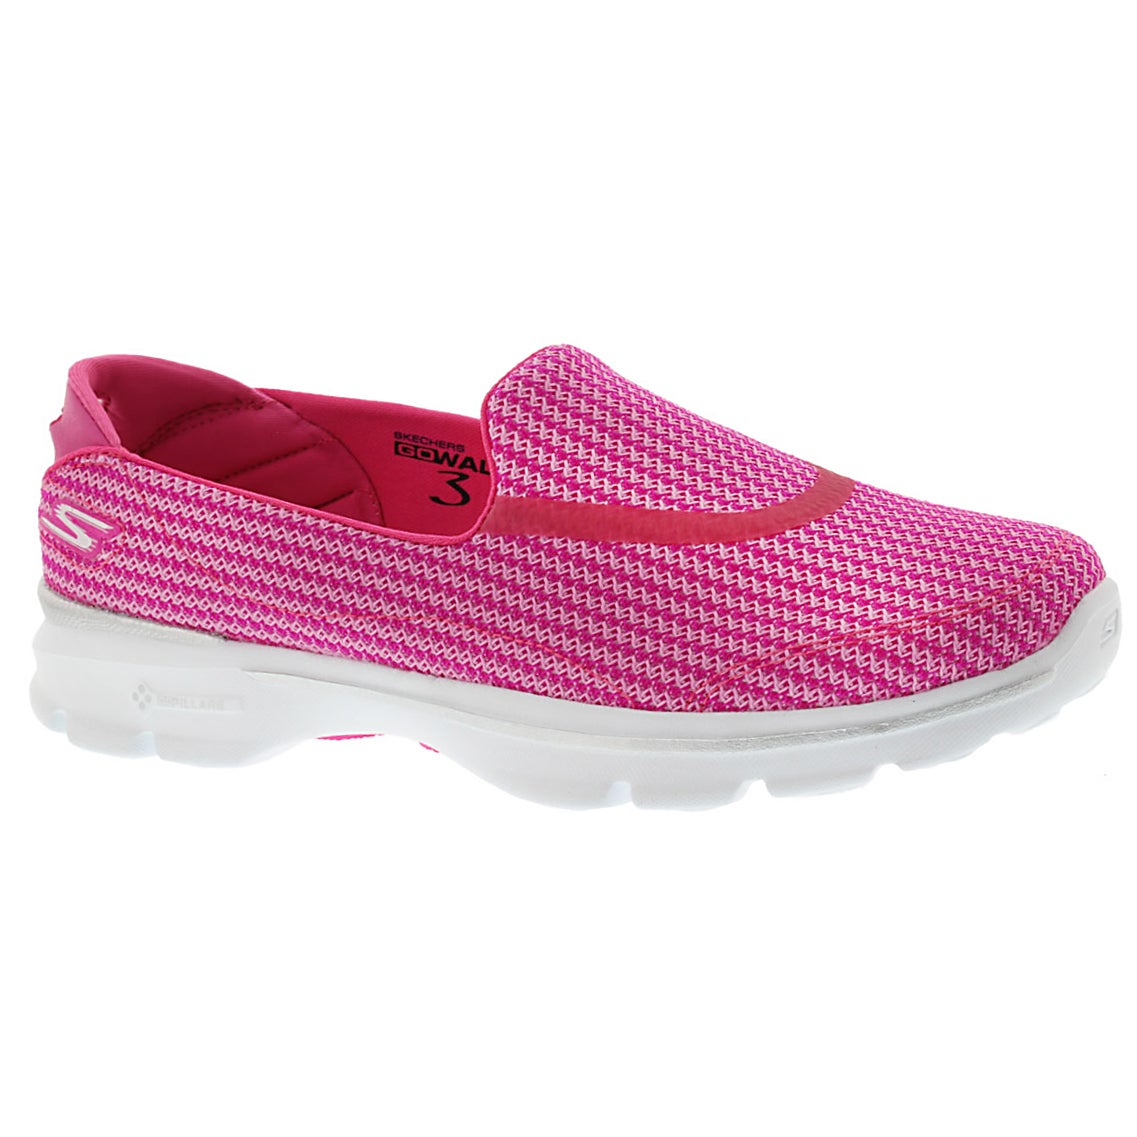 Lds GOwalk 3 pink slip on walking shoe